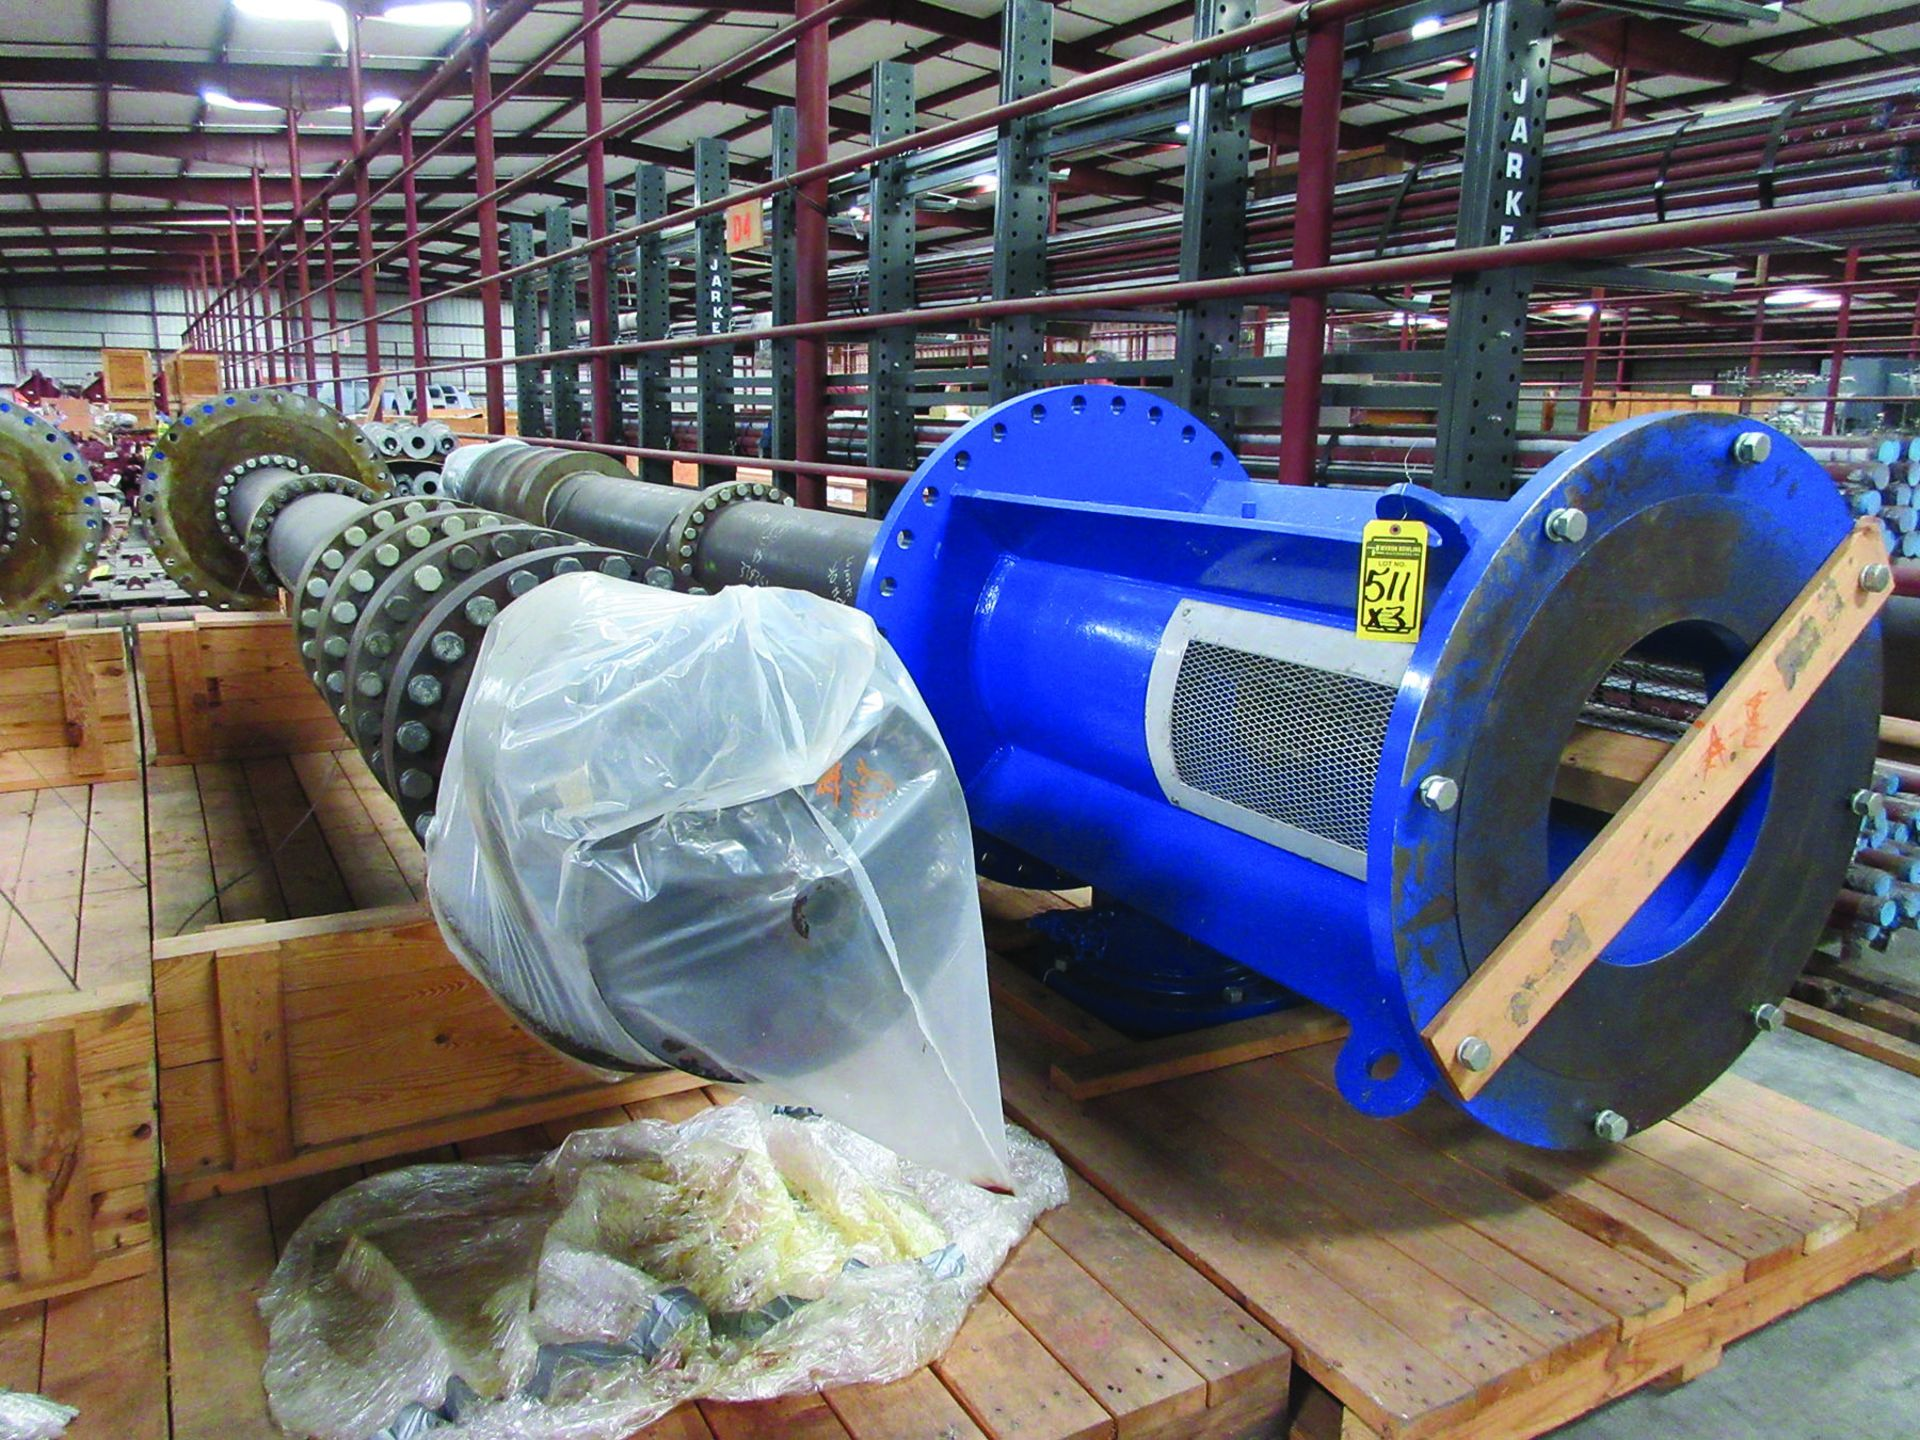 (3) 2008 RUHRPUMPEN 26DX24LQ 4-STAGE PUMPS, 3610 GMP, HYD. PRESSURE 75 PSI - 915 PSI, MAWP 50 - - Image 4 of 5